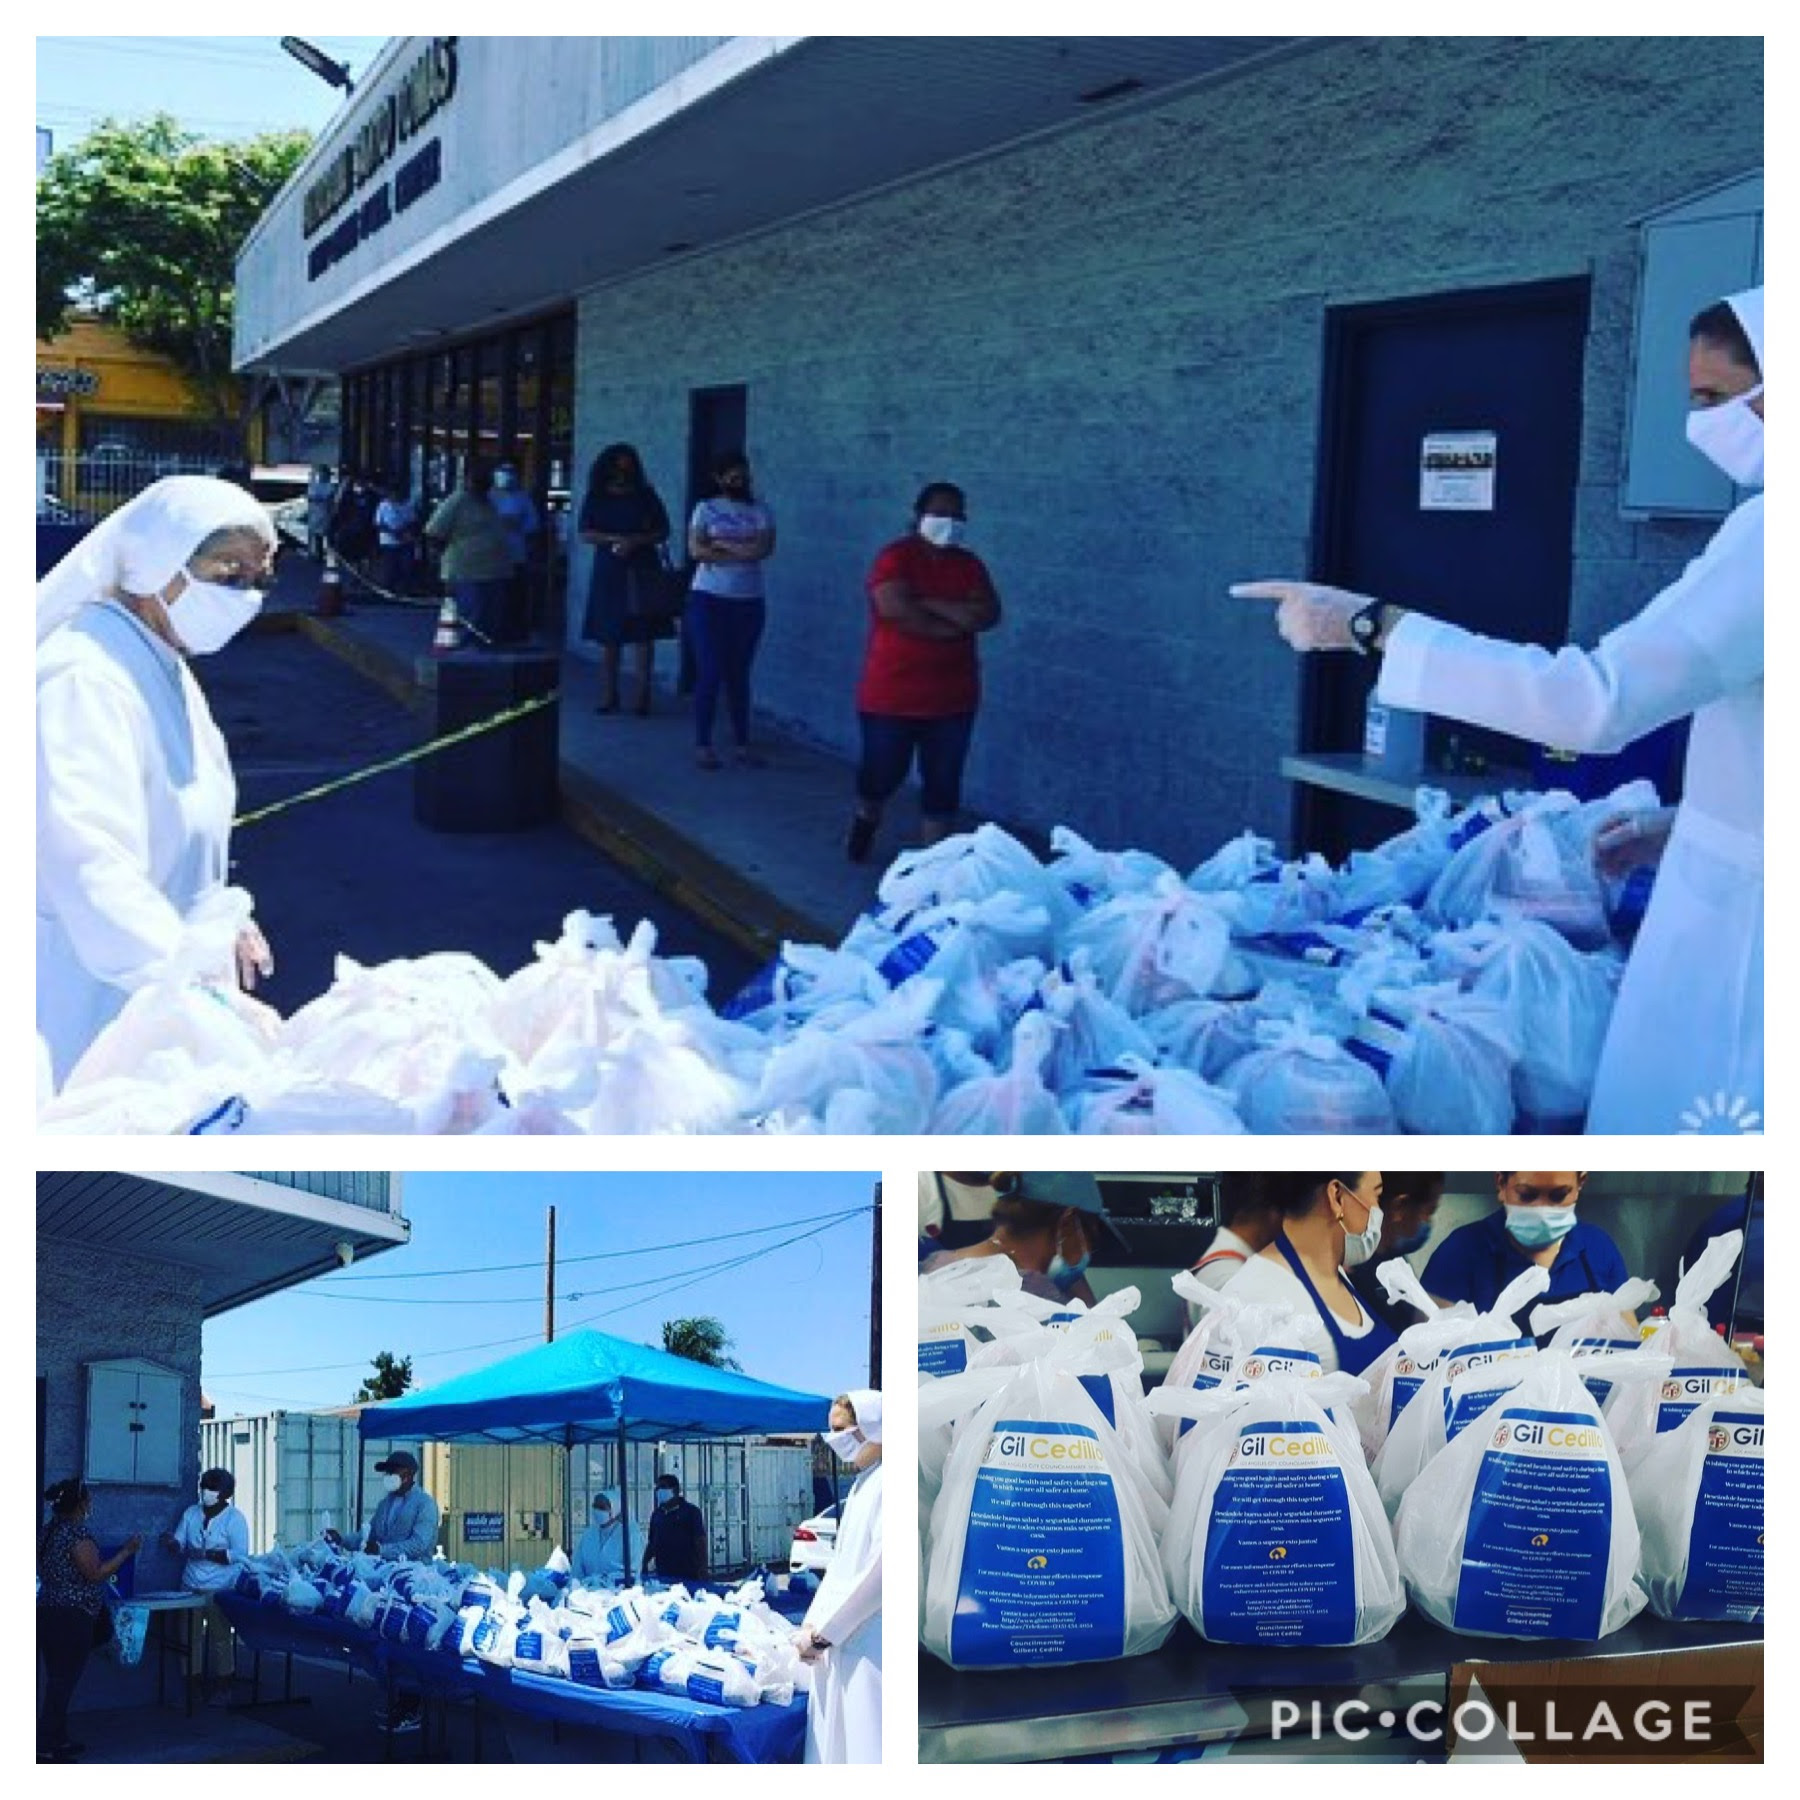 St Thomas the Apostle & LANI distribute La 27 Restaurant Meals in Harvard Heights 5-11-2020 COLLAGE